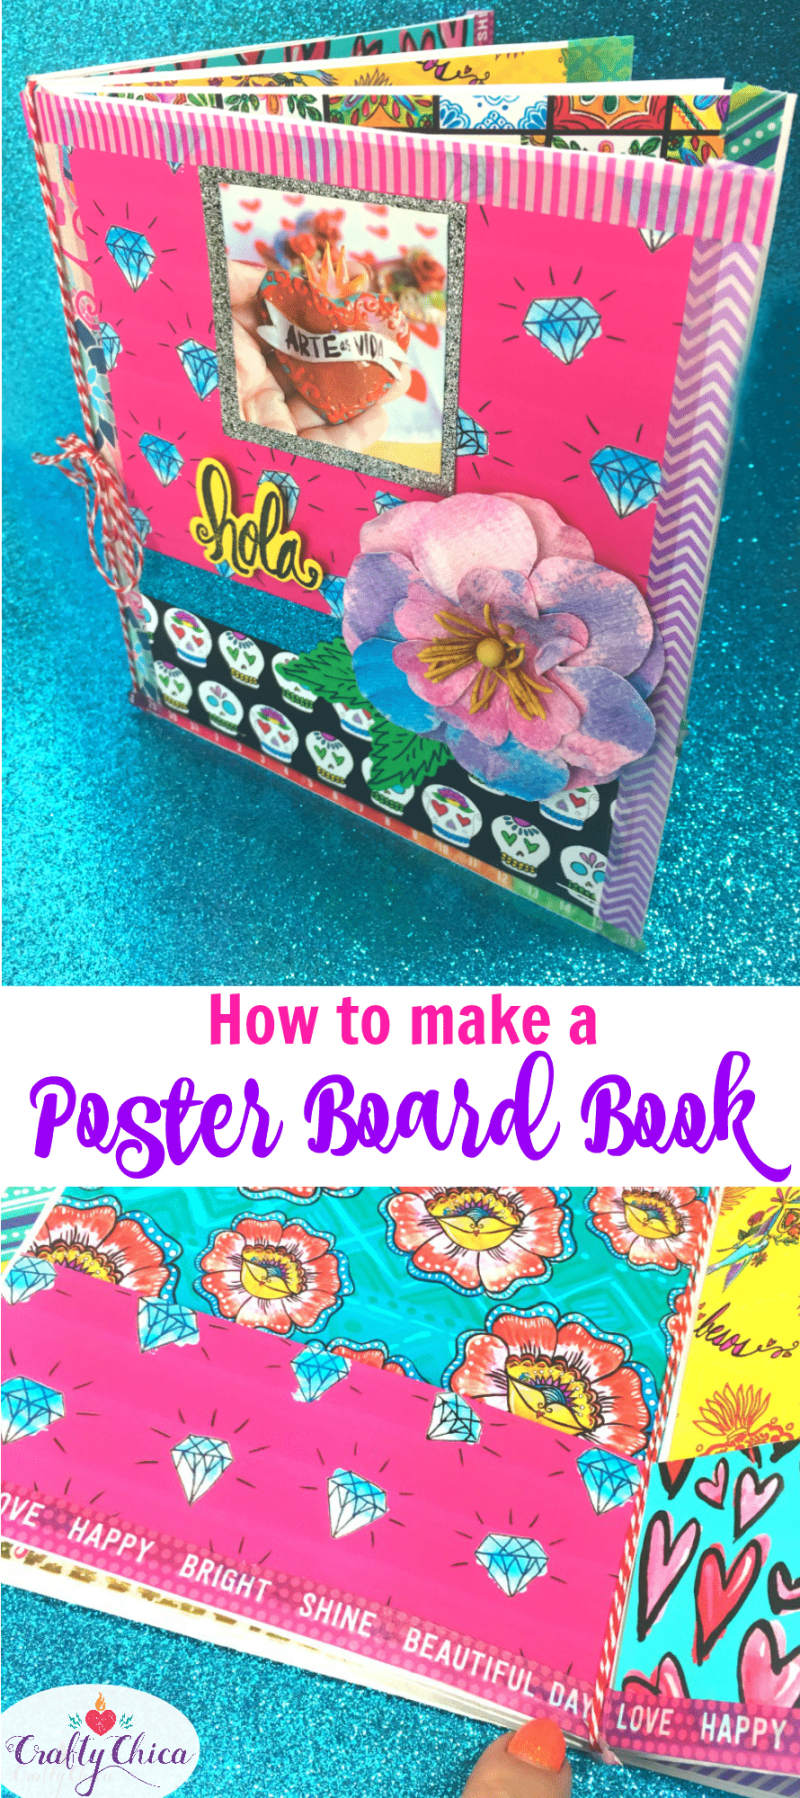 How to make a book by folding poster board